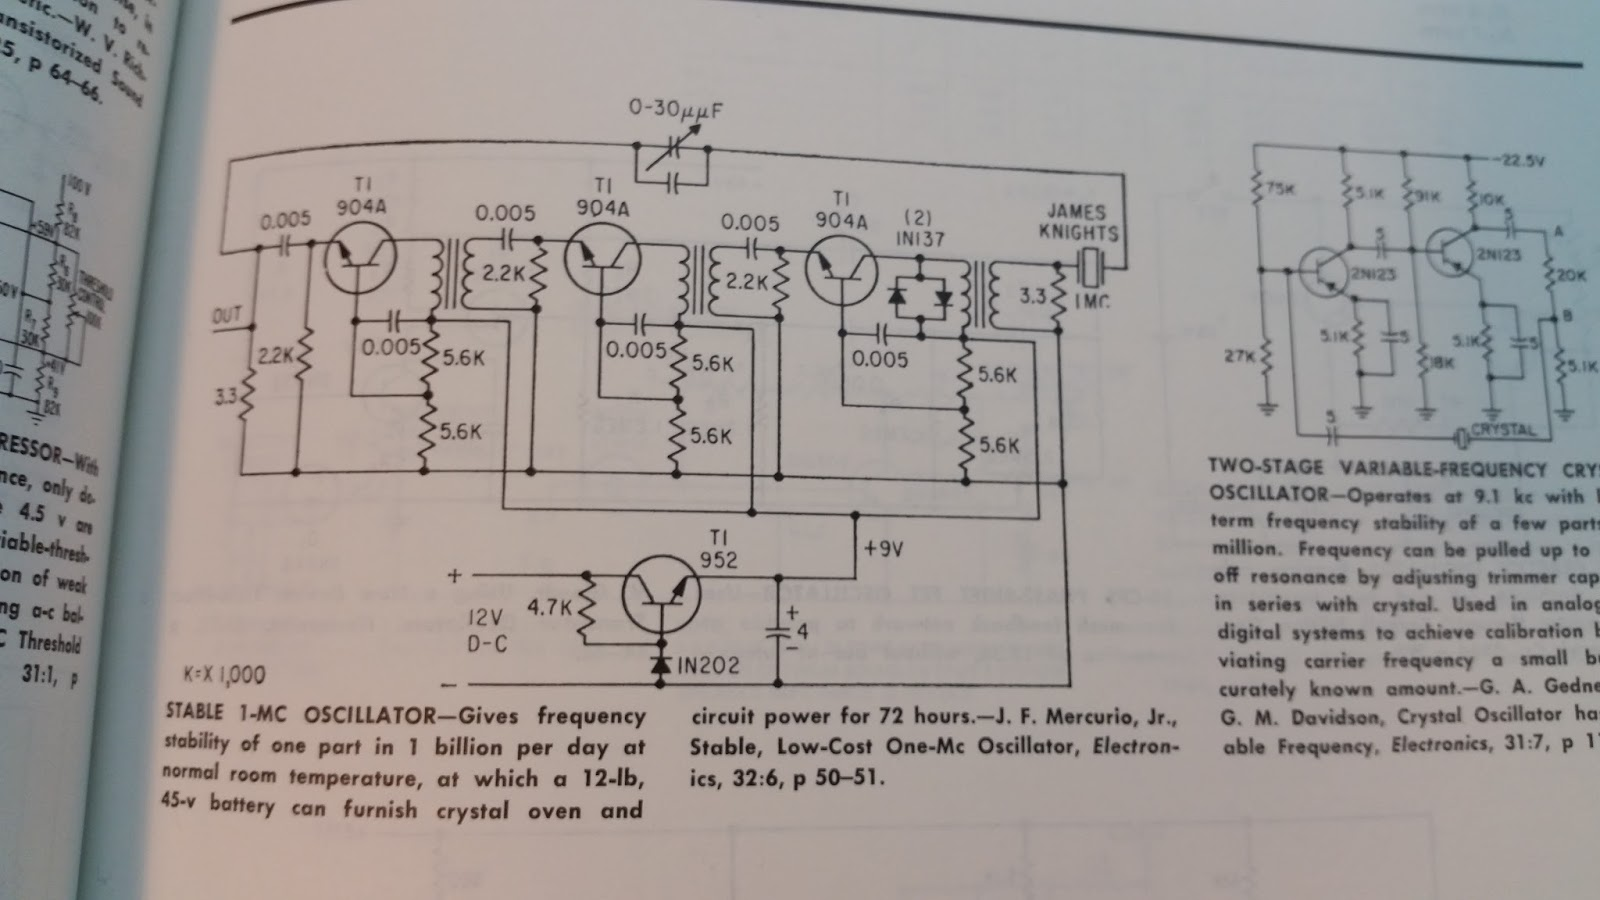 Oscillators Amplifiers Systems Oh My Sams Electrical Journal Tutorial Part 3 Commoncollector Sample Circuits From The Sourcebook Of Electronic By Markus